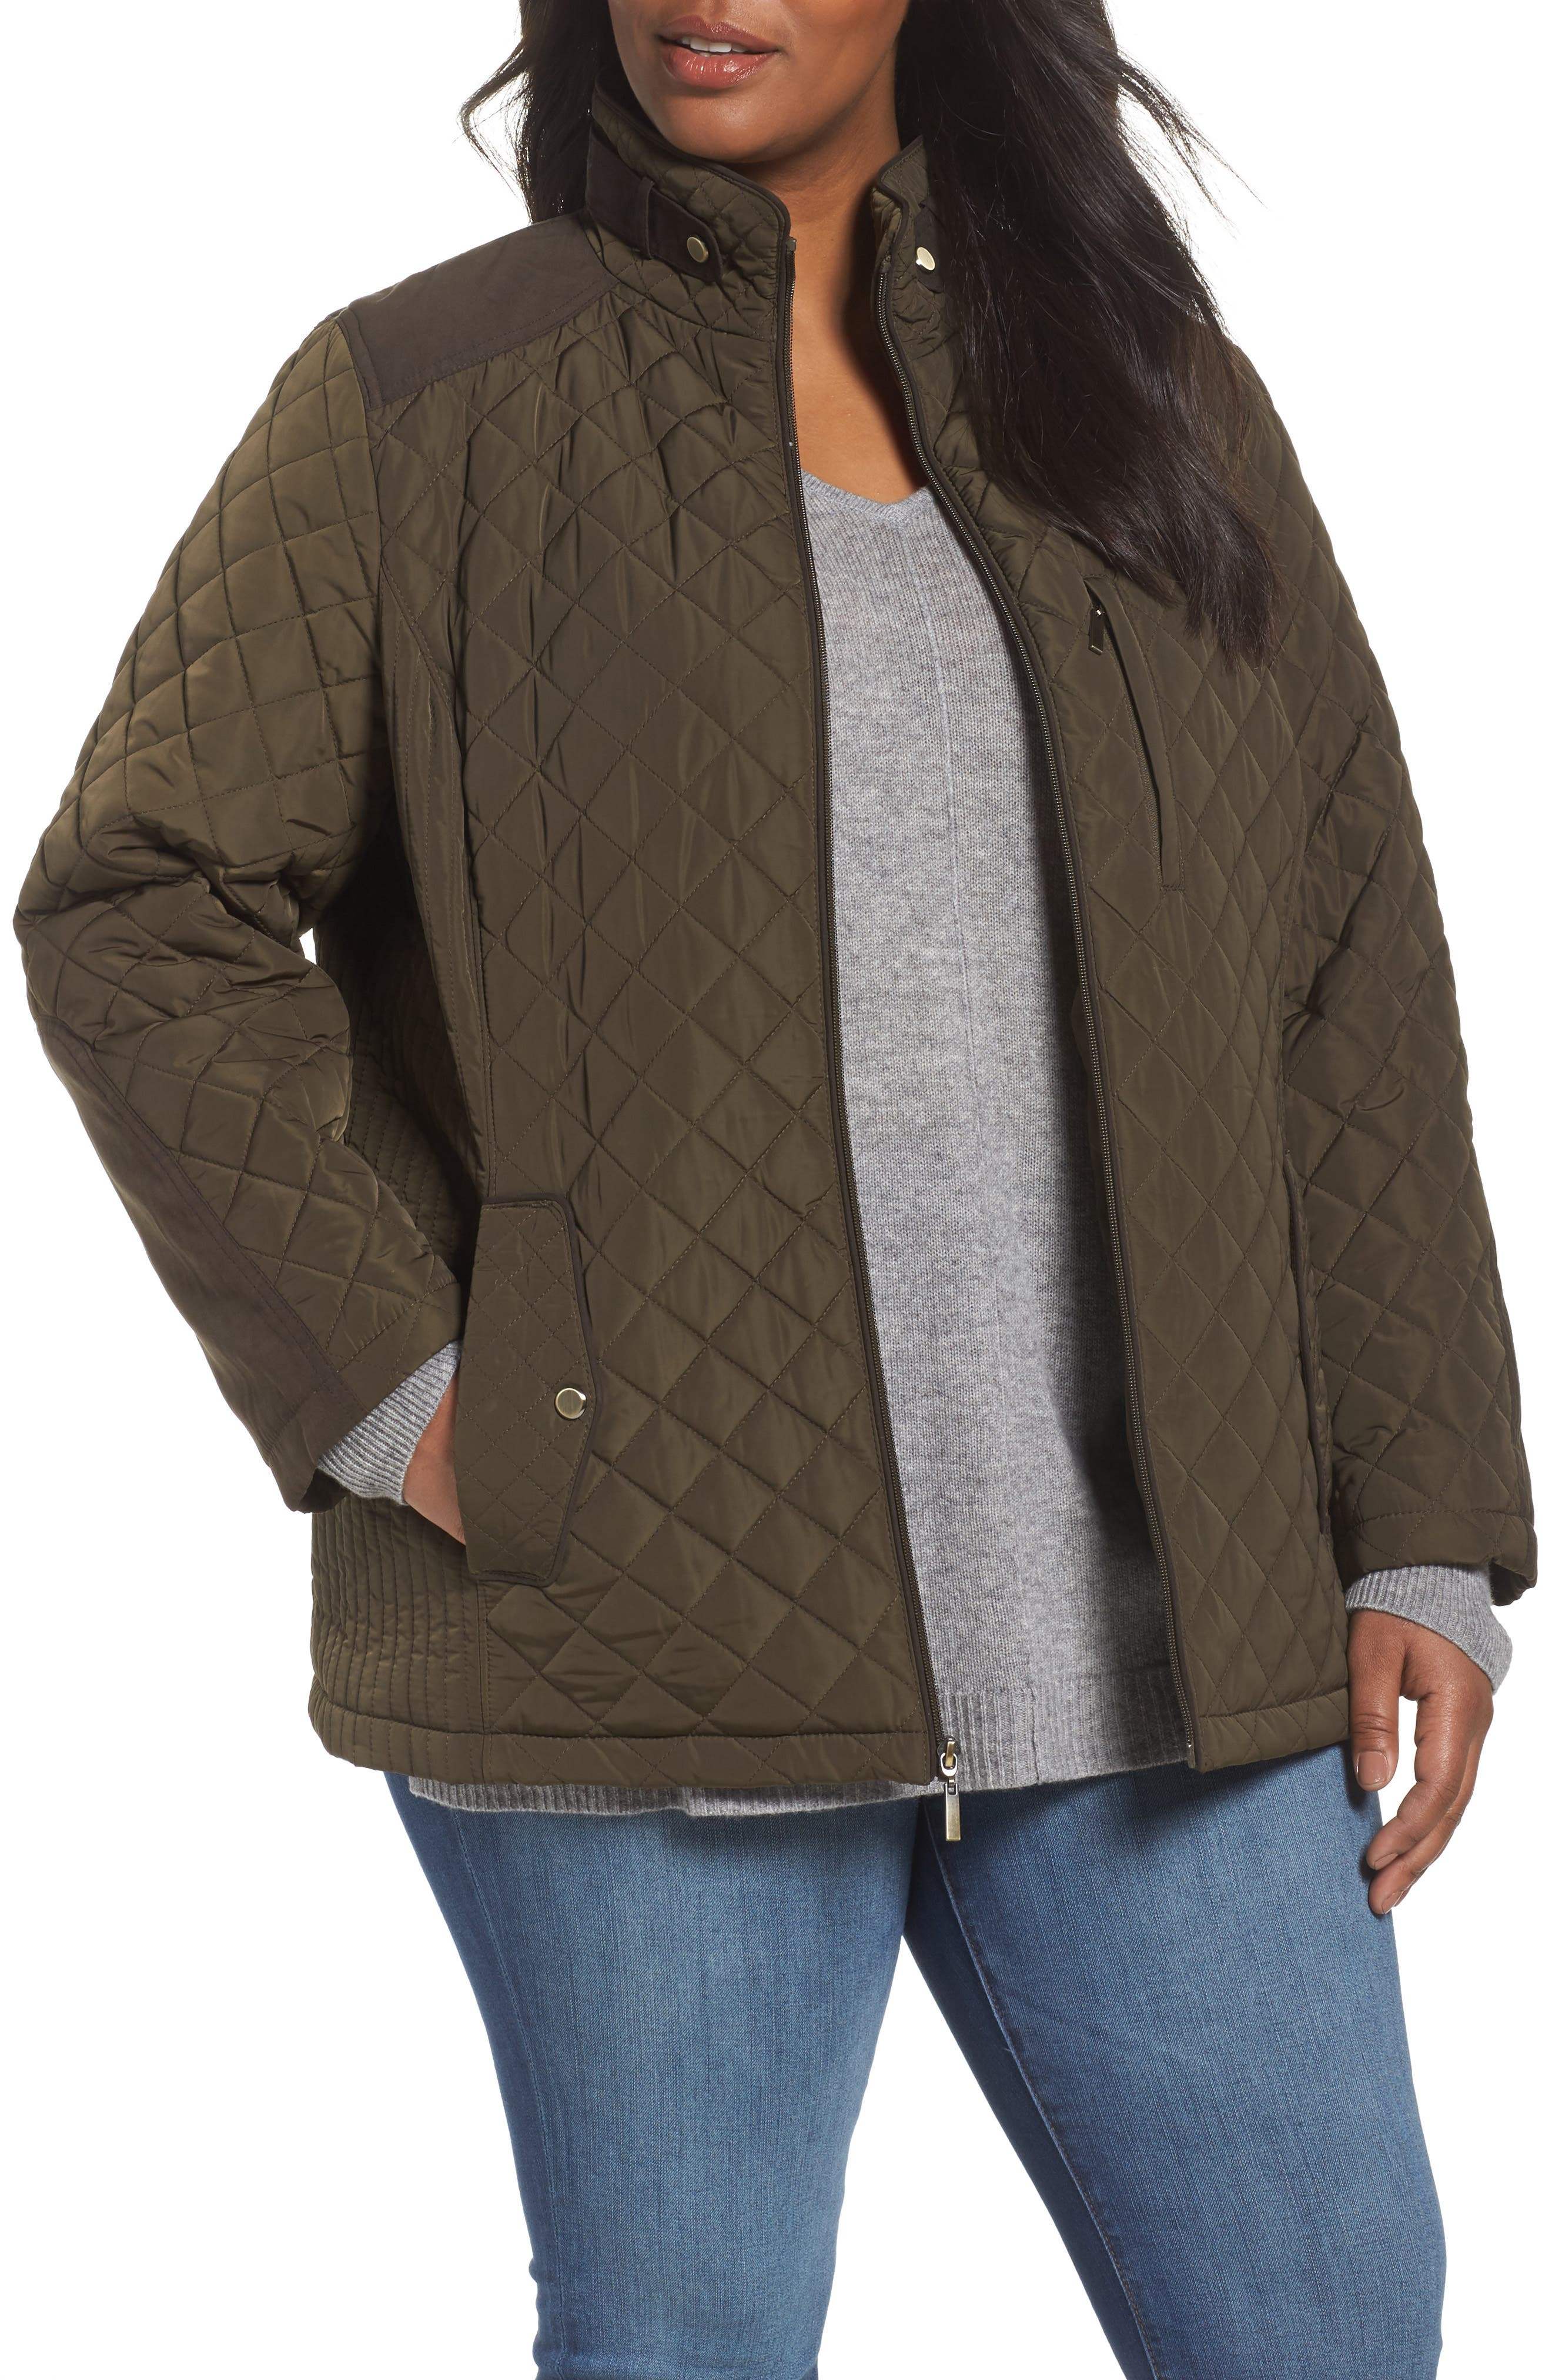 Alternate Image 1 Selected - Gallery Insulated Jacket (Plus Size)